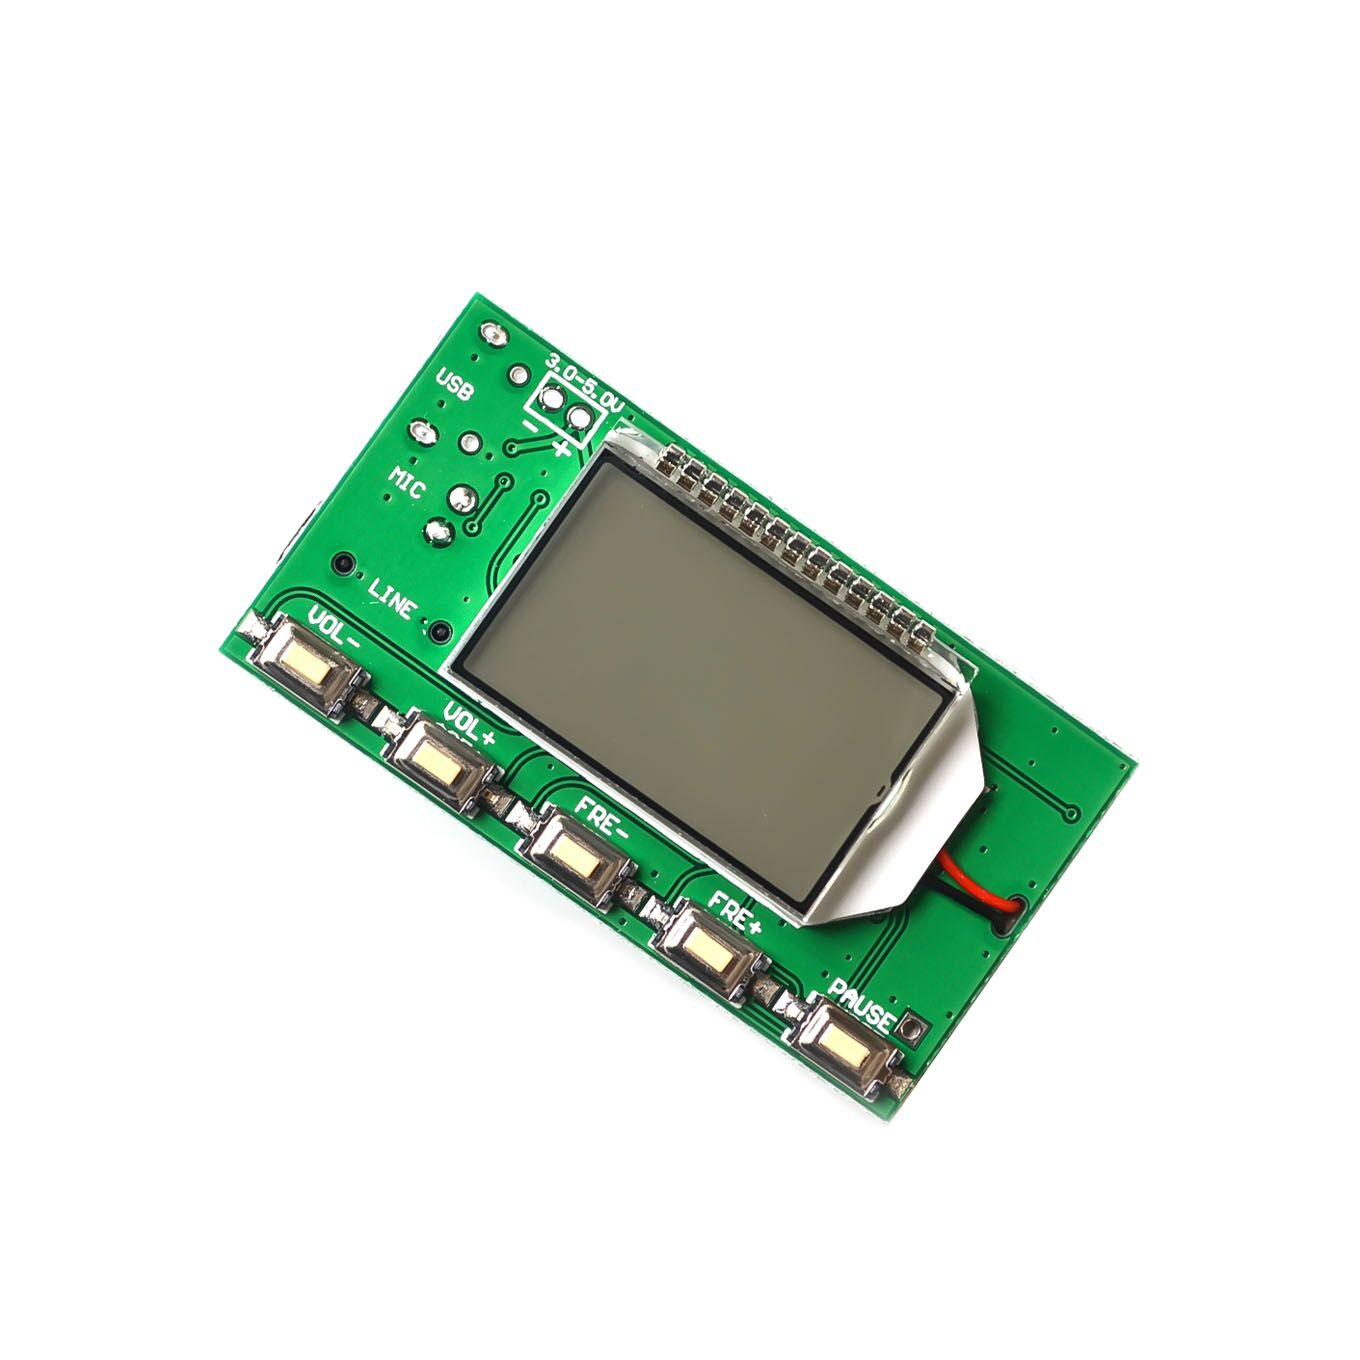 DSP PLL 87-108MHz Stereo FM Transmitter Module Digital Digital Wireless Microphone Board Multi-function Frequency ModulationDSP PLL 87-108MHz Stereo FM Transmitter Module Digital Digital Wireless Microphone Board Multi-function Frequency Modulation